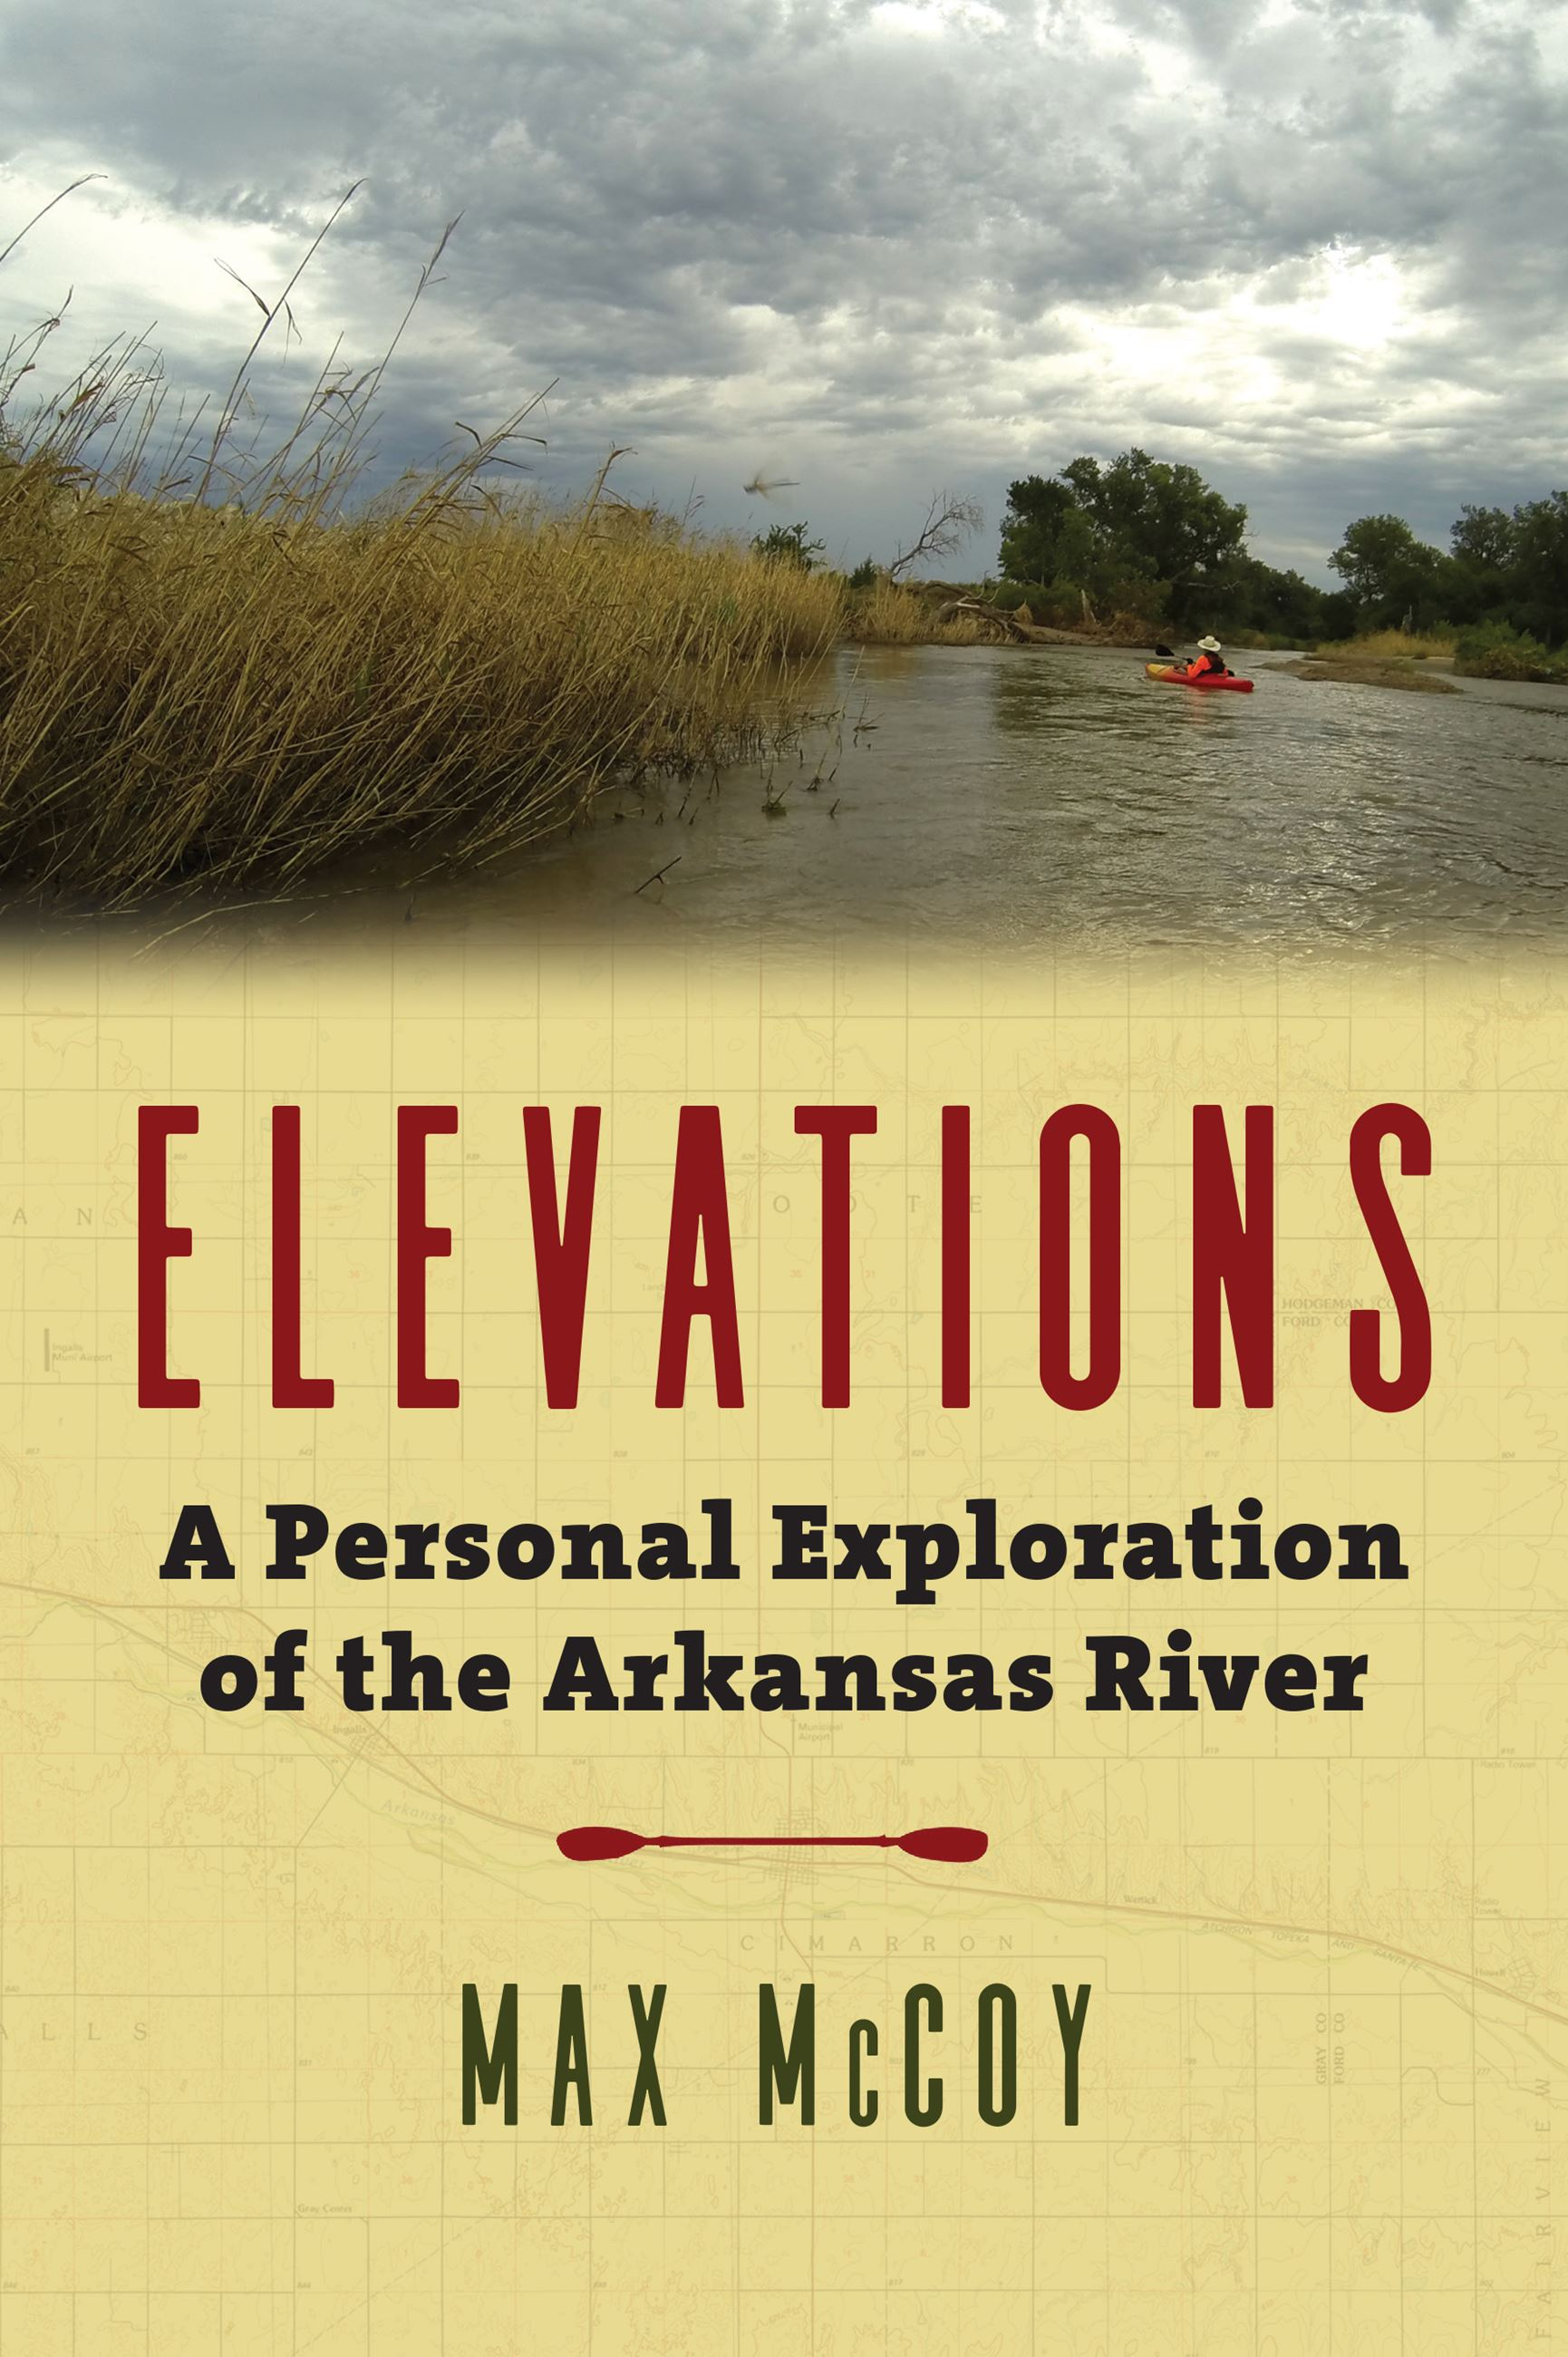 cover art for the book Elevations by Max McCoy